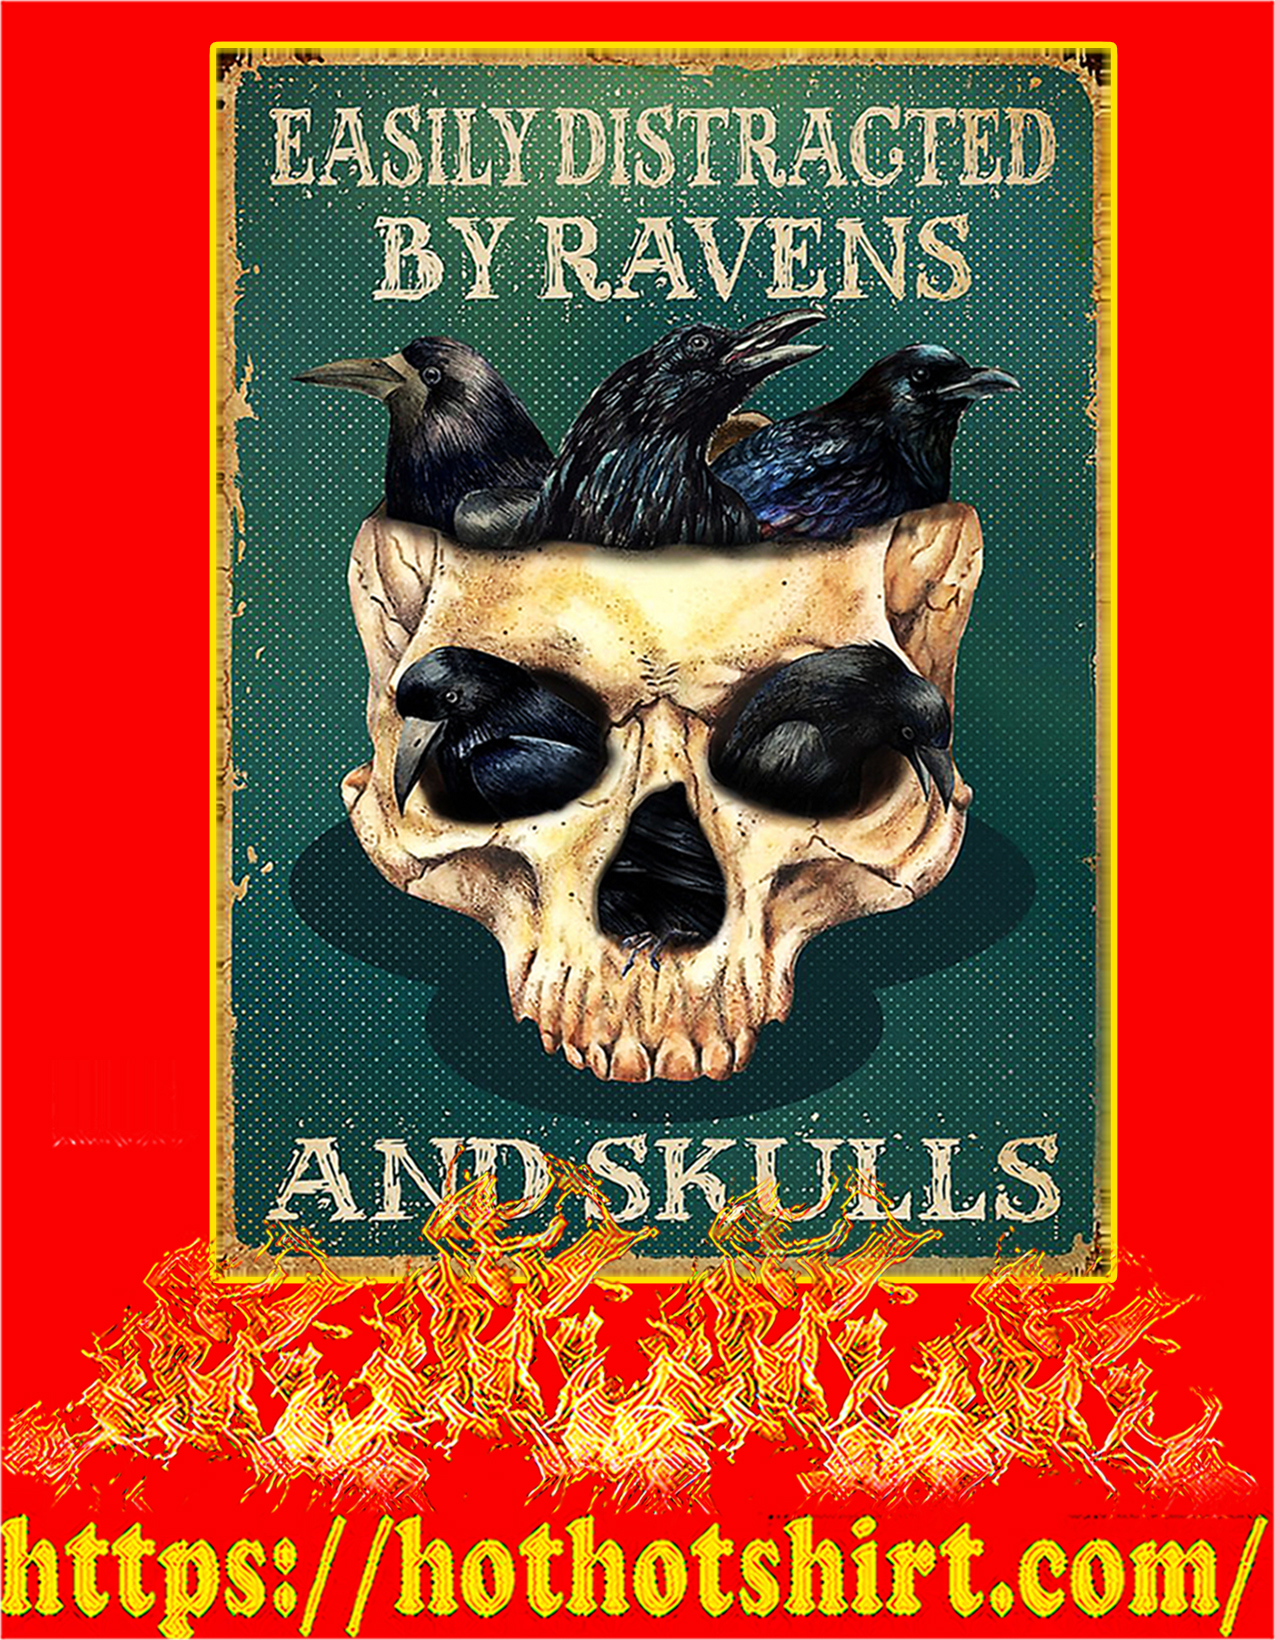 Easily distracted by ravens and skulls poster - A2